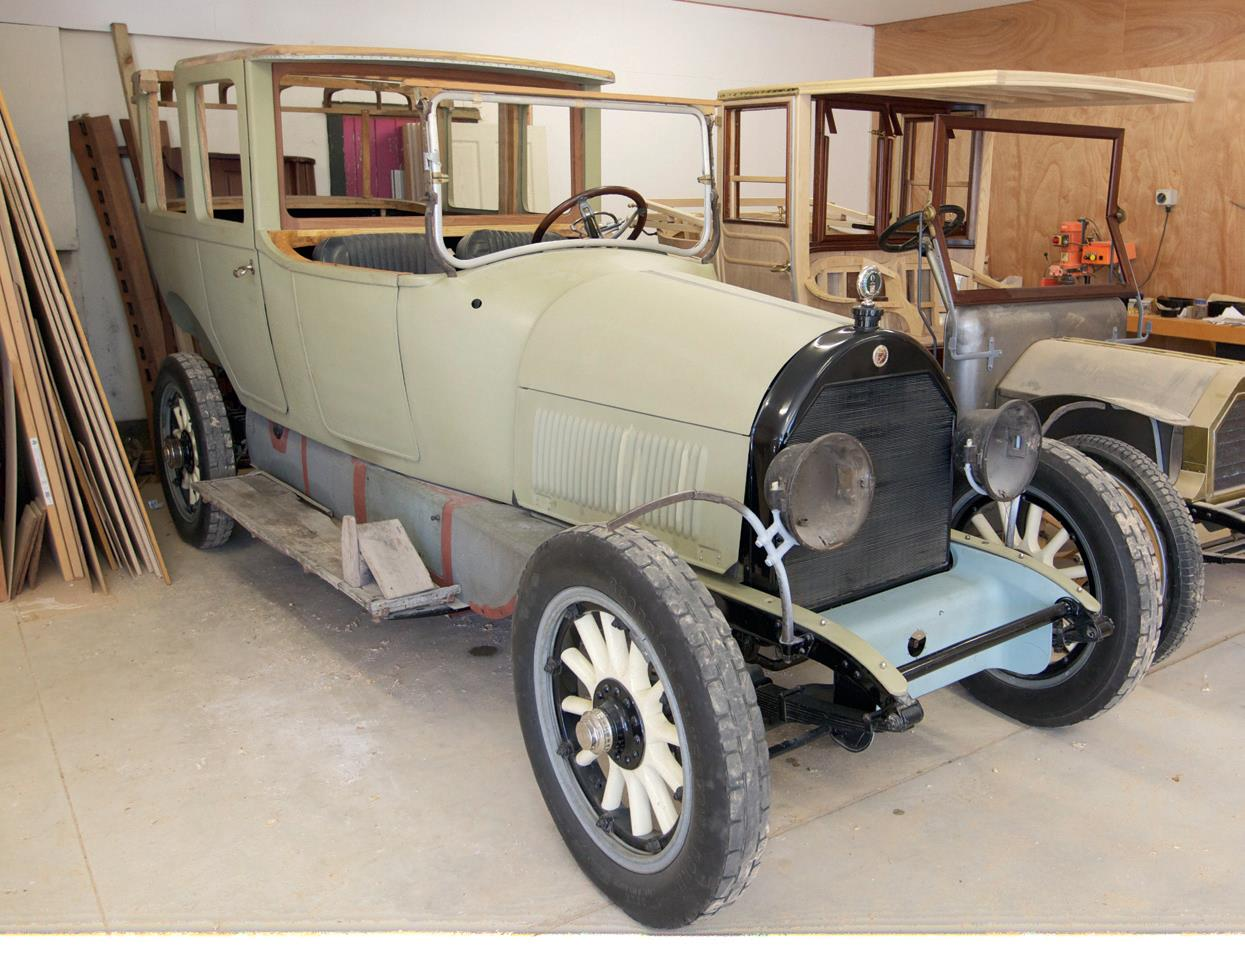 Sitting alongside the Arrol Johnston is another project, a 1918 Cadillac Landaulet.